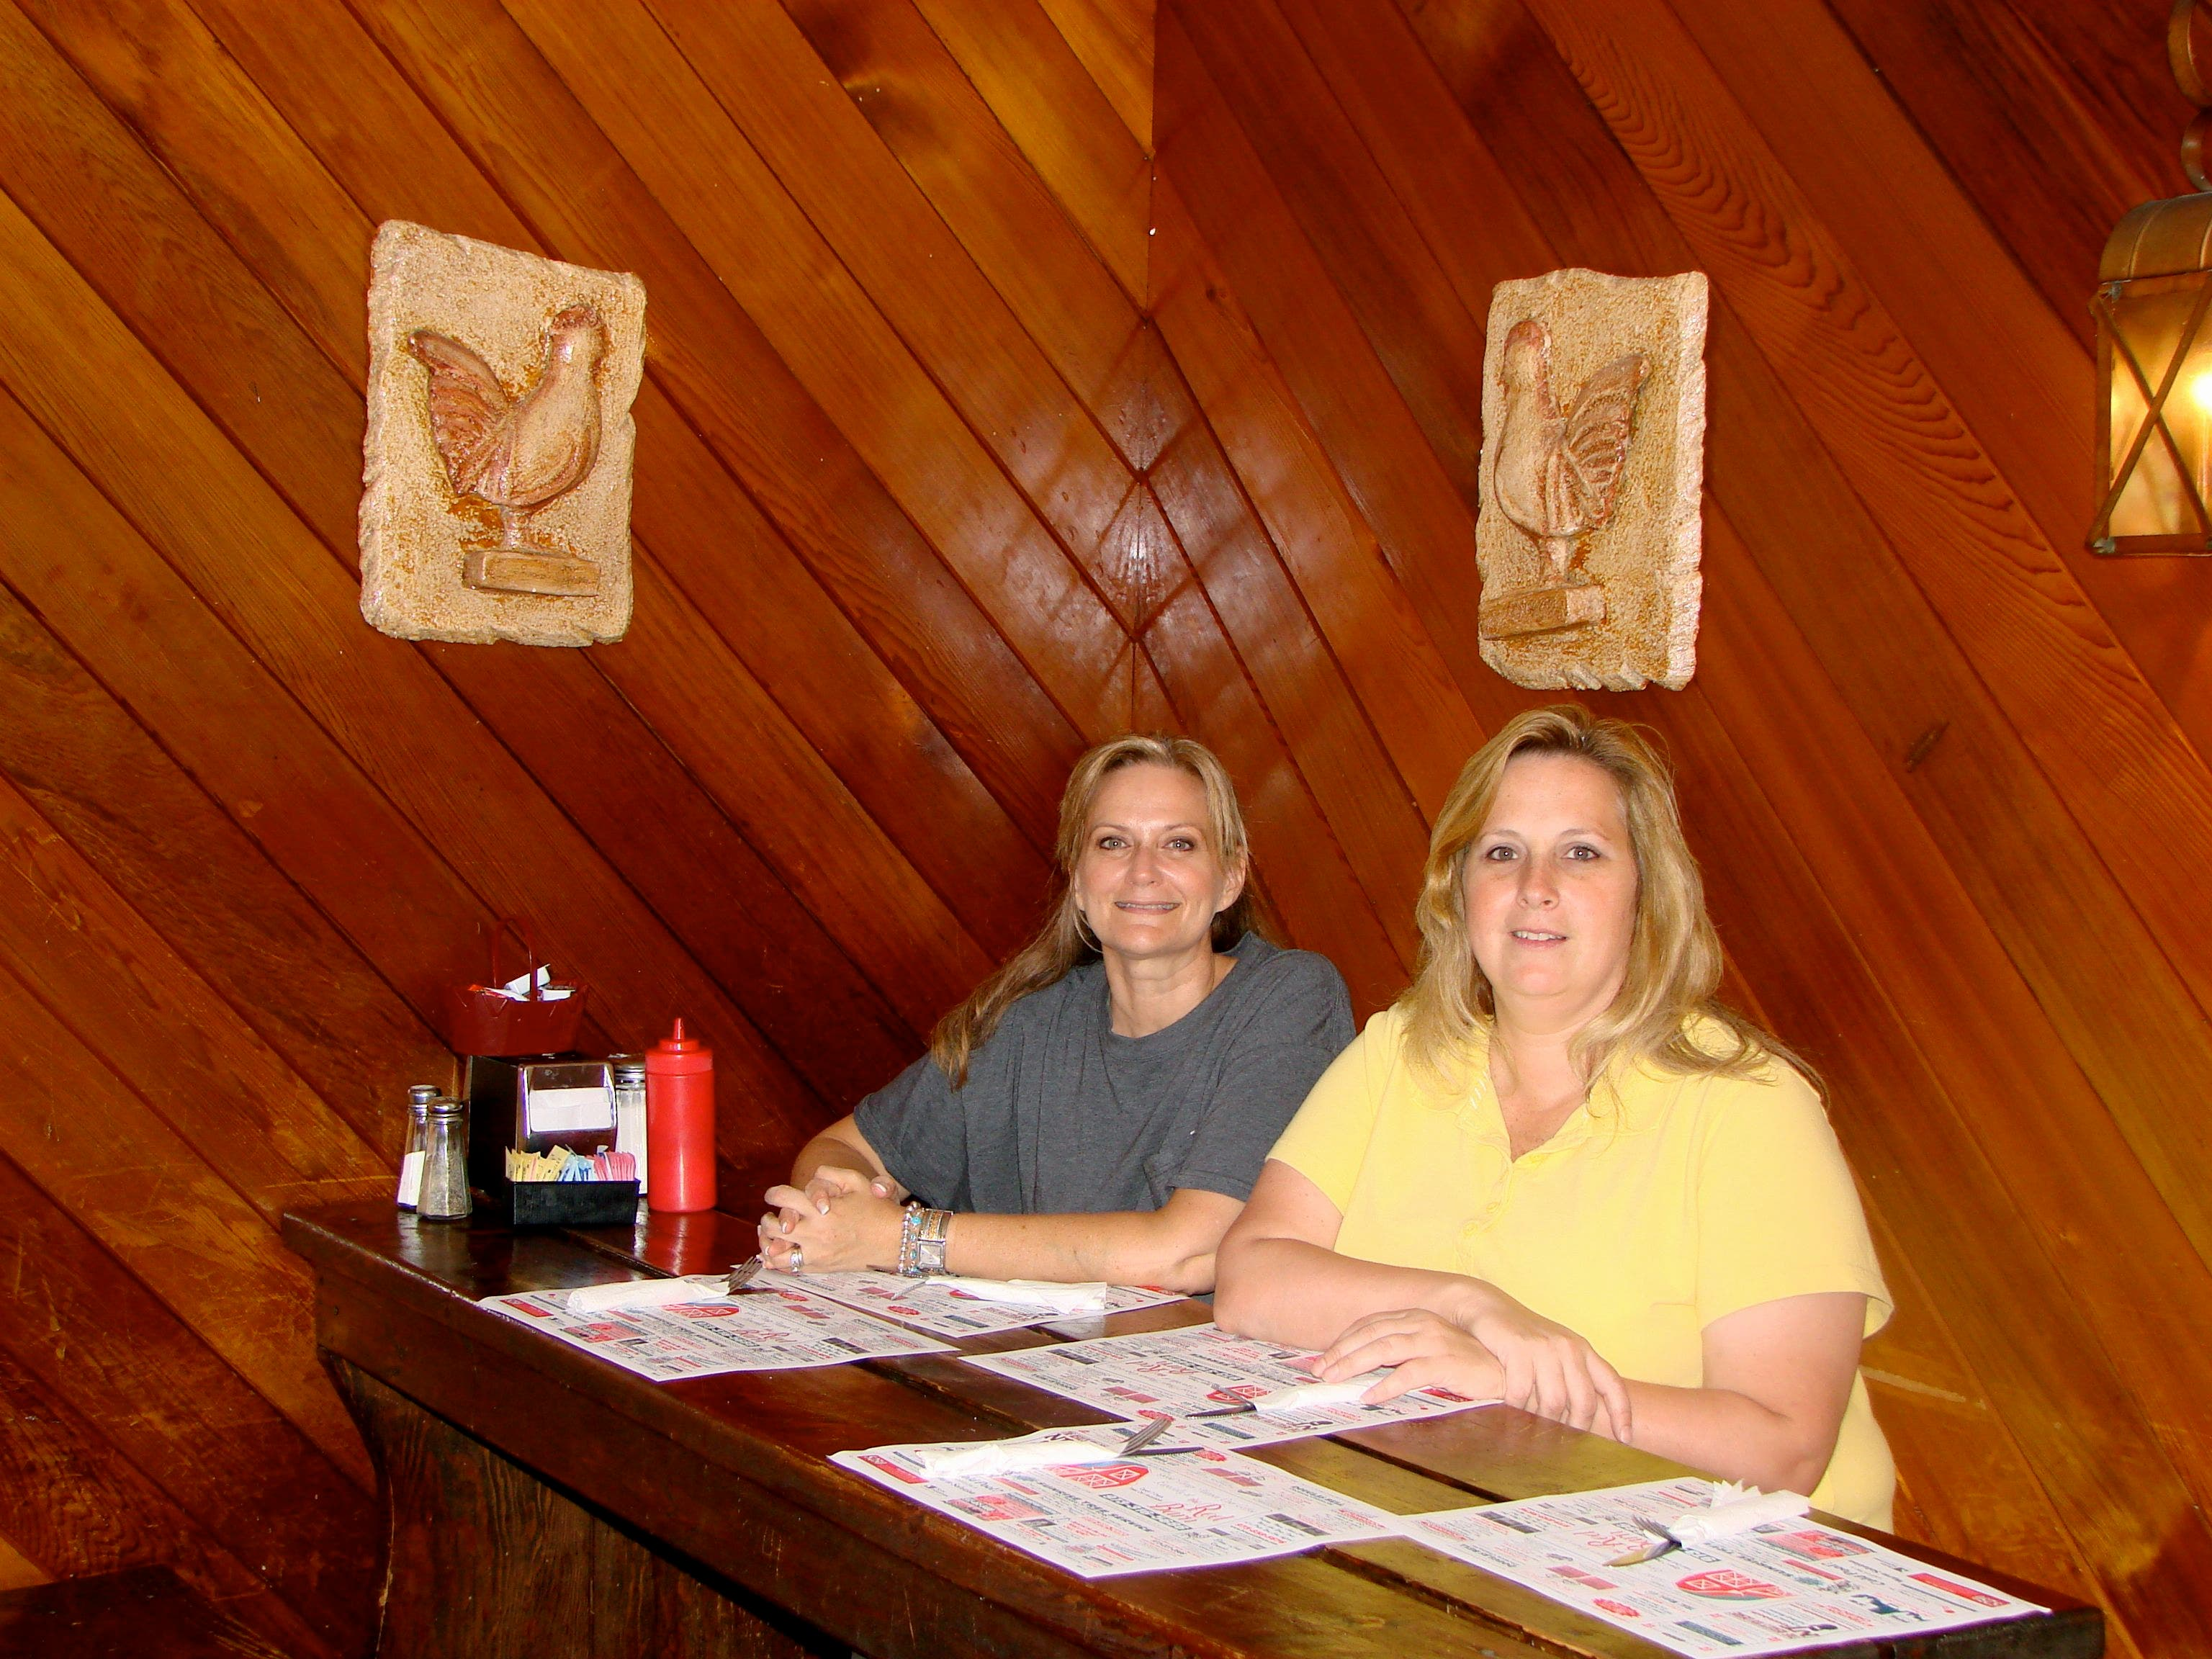 Red Barn Provides Warmth, Waffles | Montville, NJ Patch